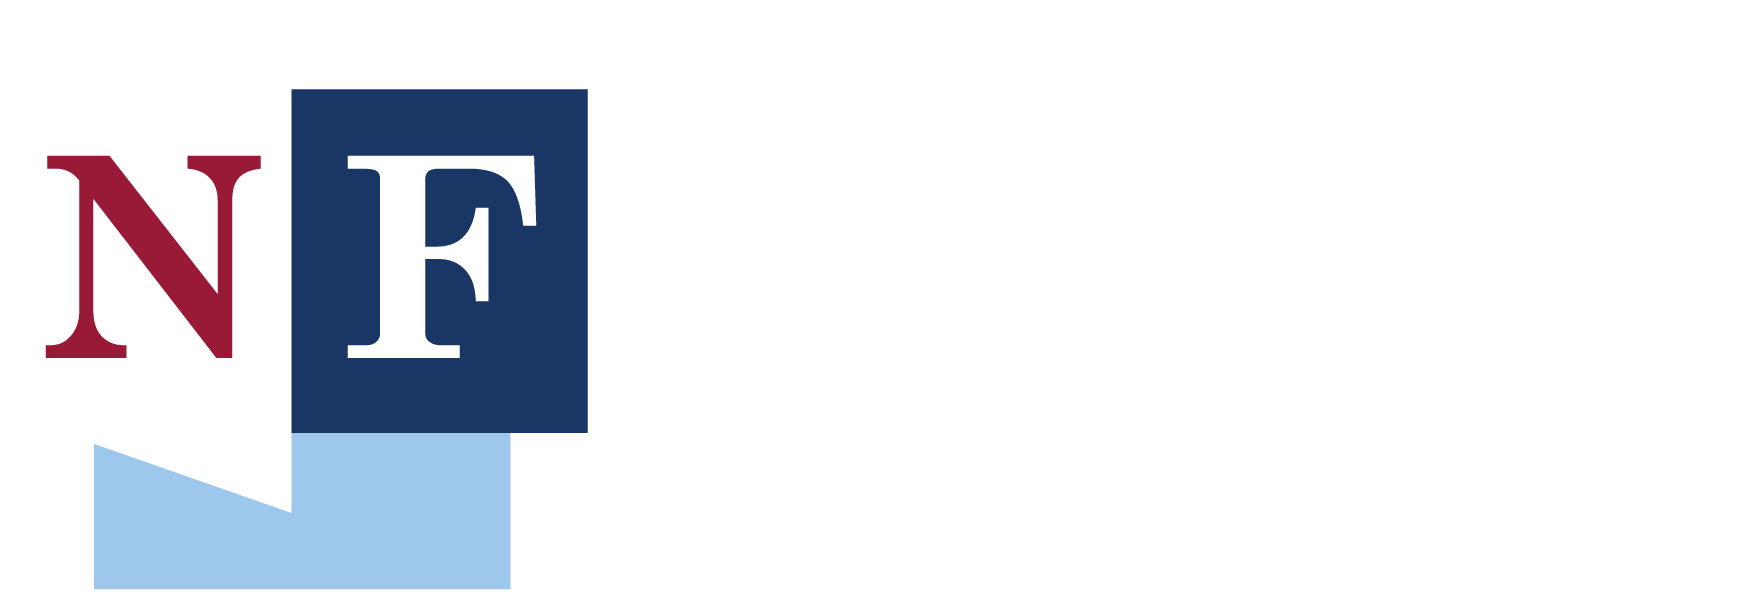 New Foundation Savings Bank Logo (Link to Homepage)